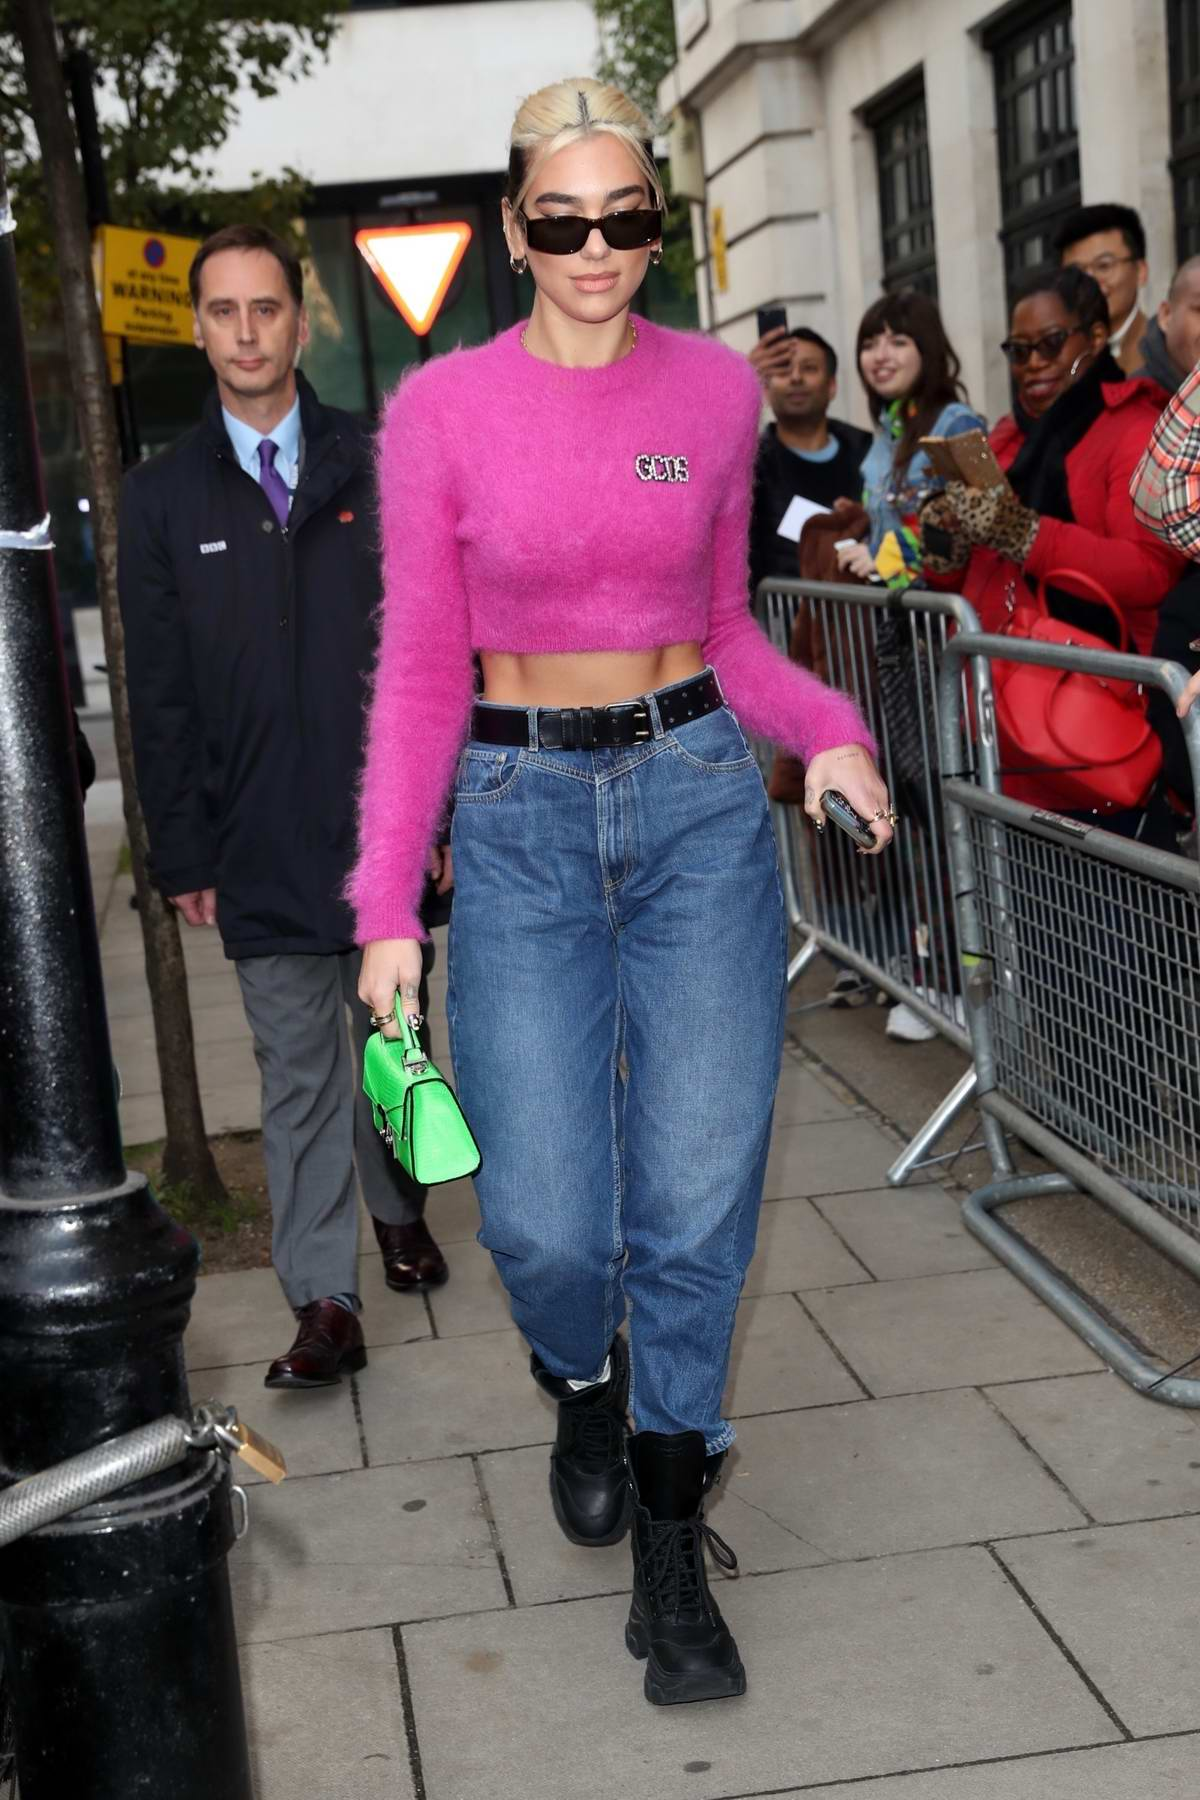 Dua Lipa wears a cropped fuzzy pink sweater and high wasted jeans as she leaves BBC's Zoe Ball Show in London, UK